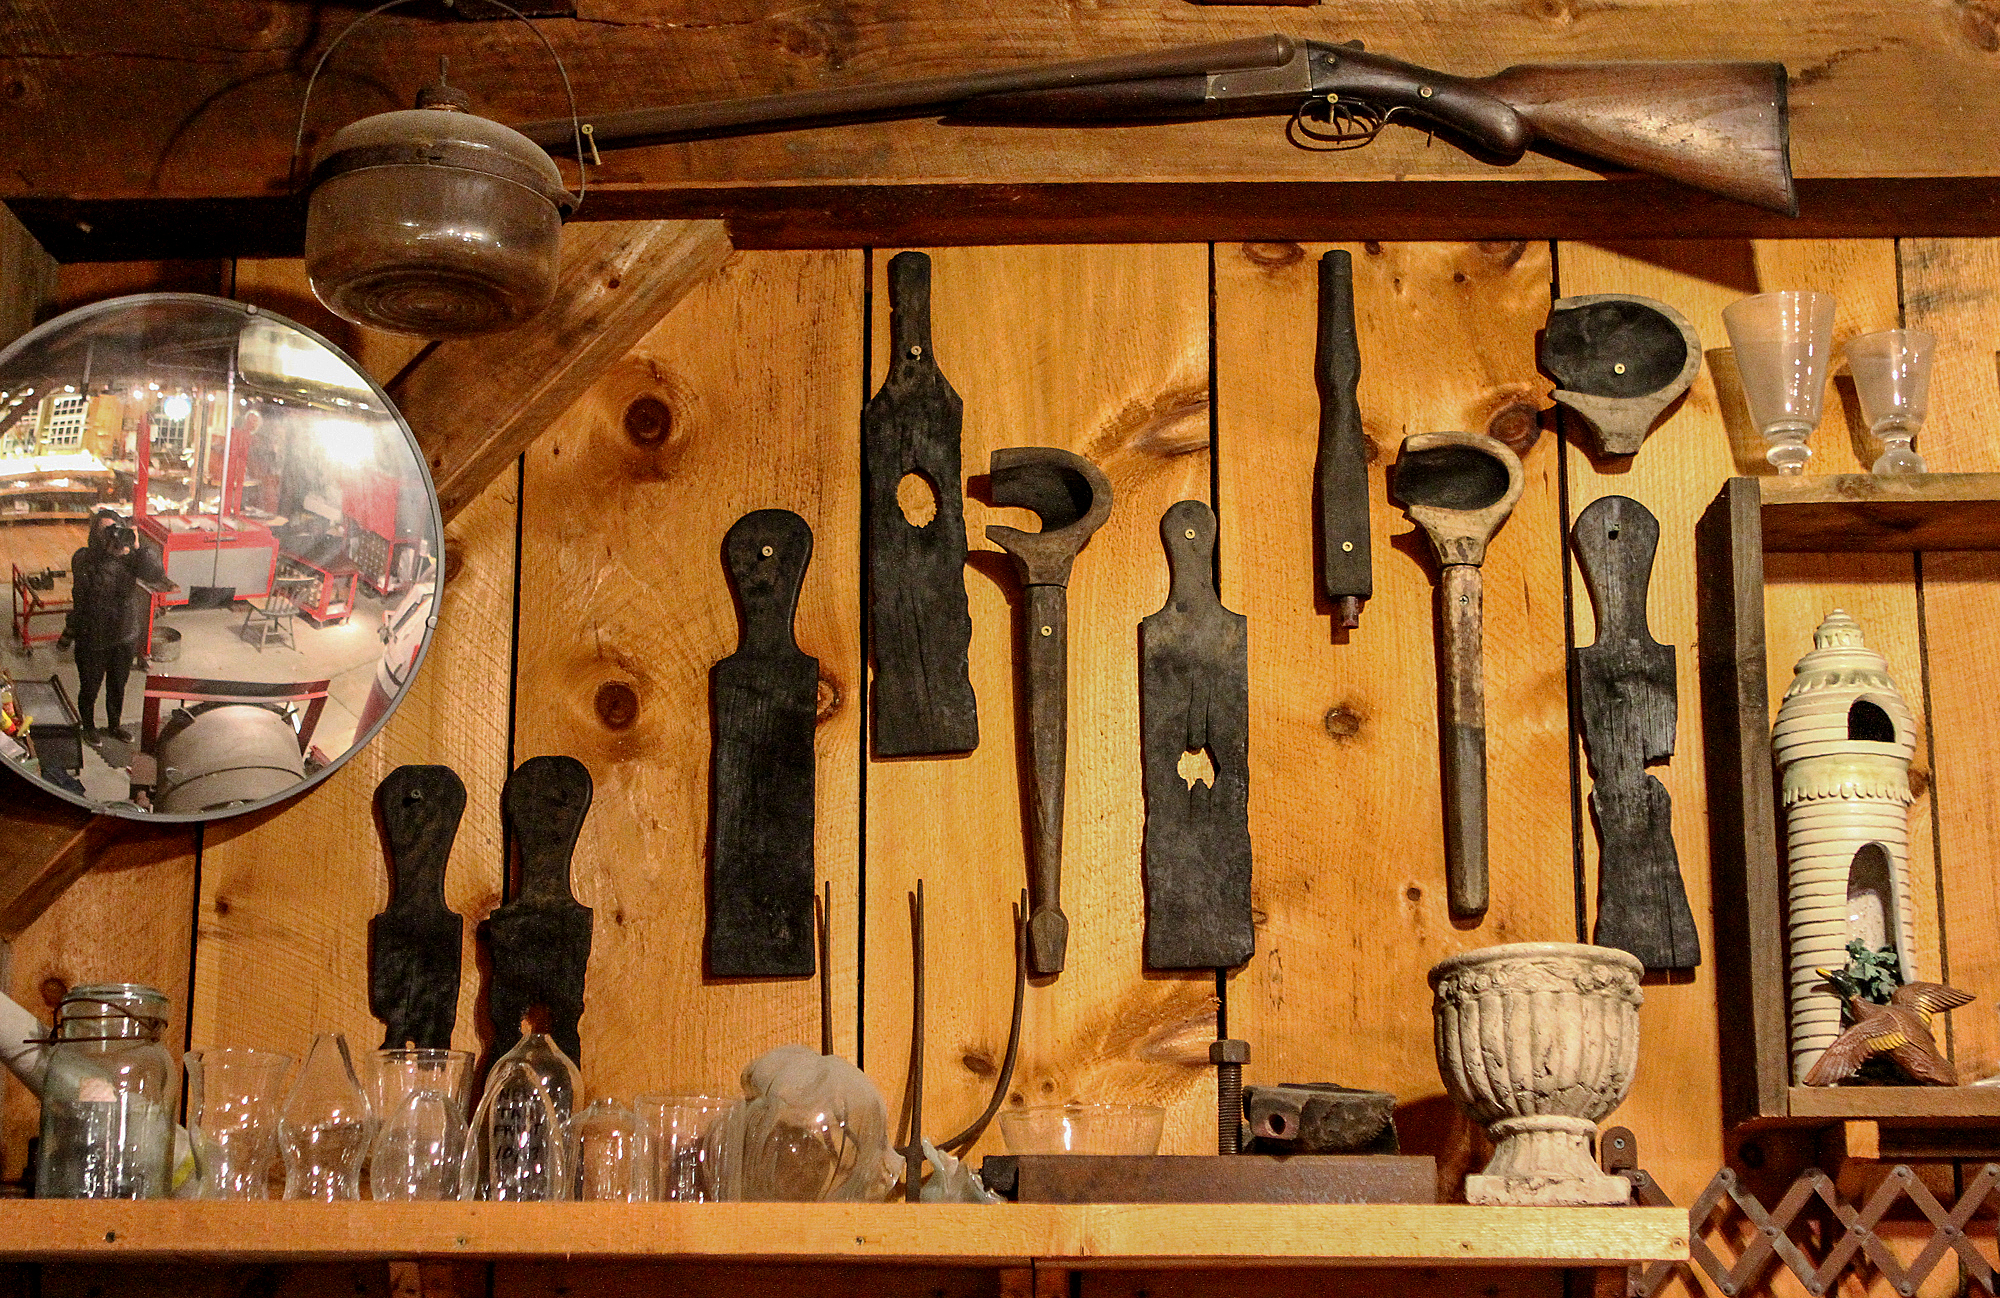 Wooden tools of our past.